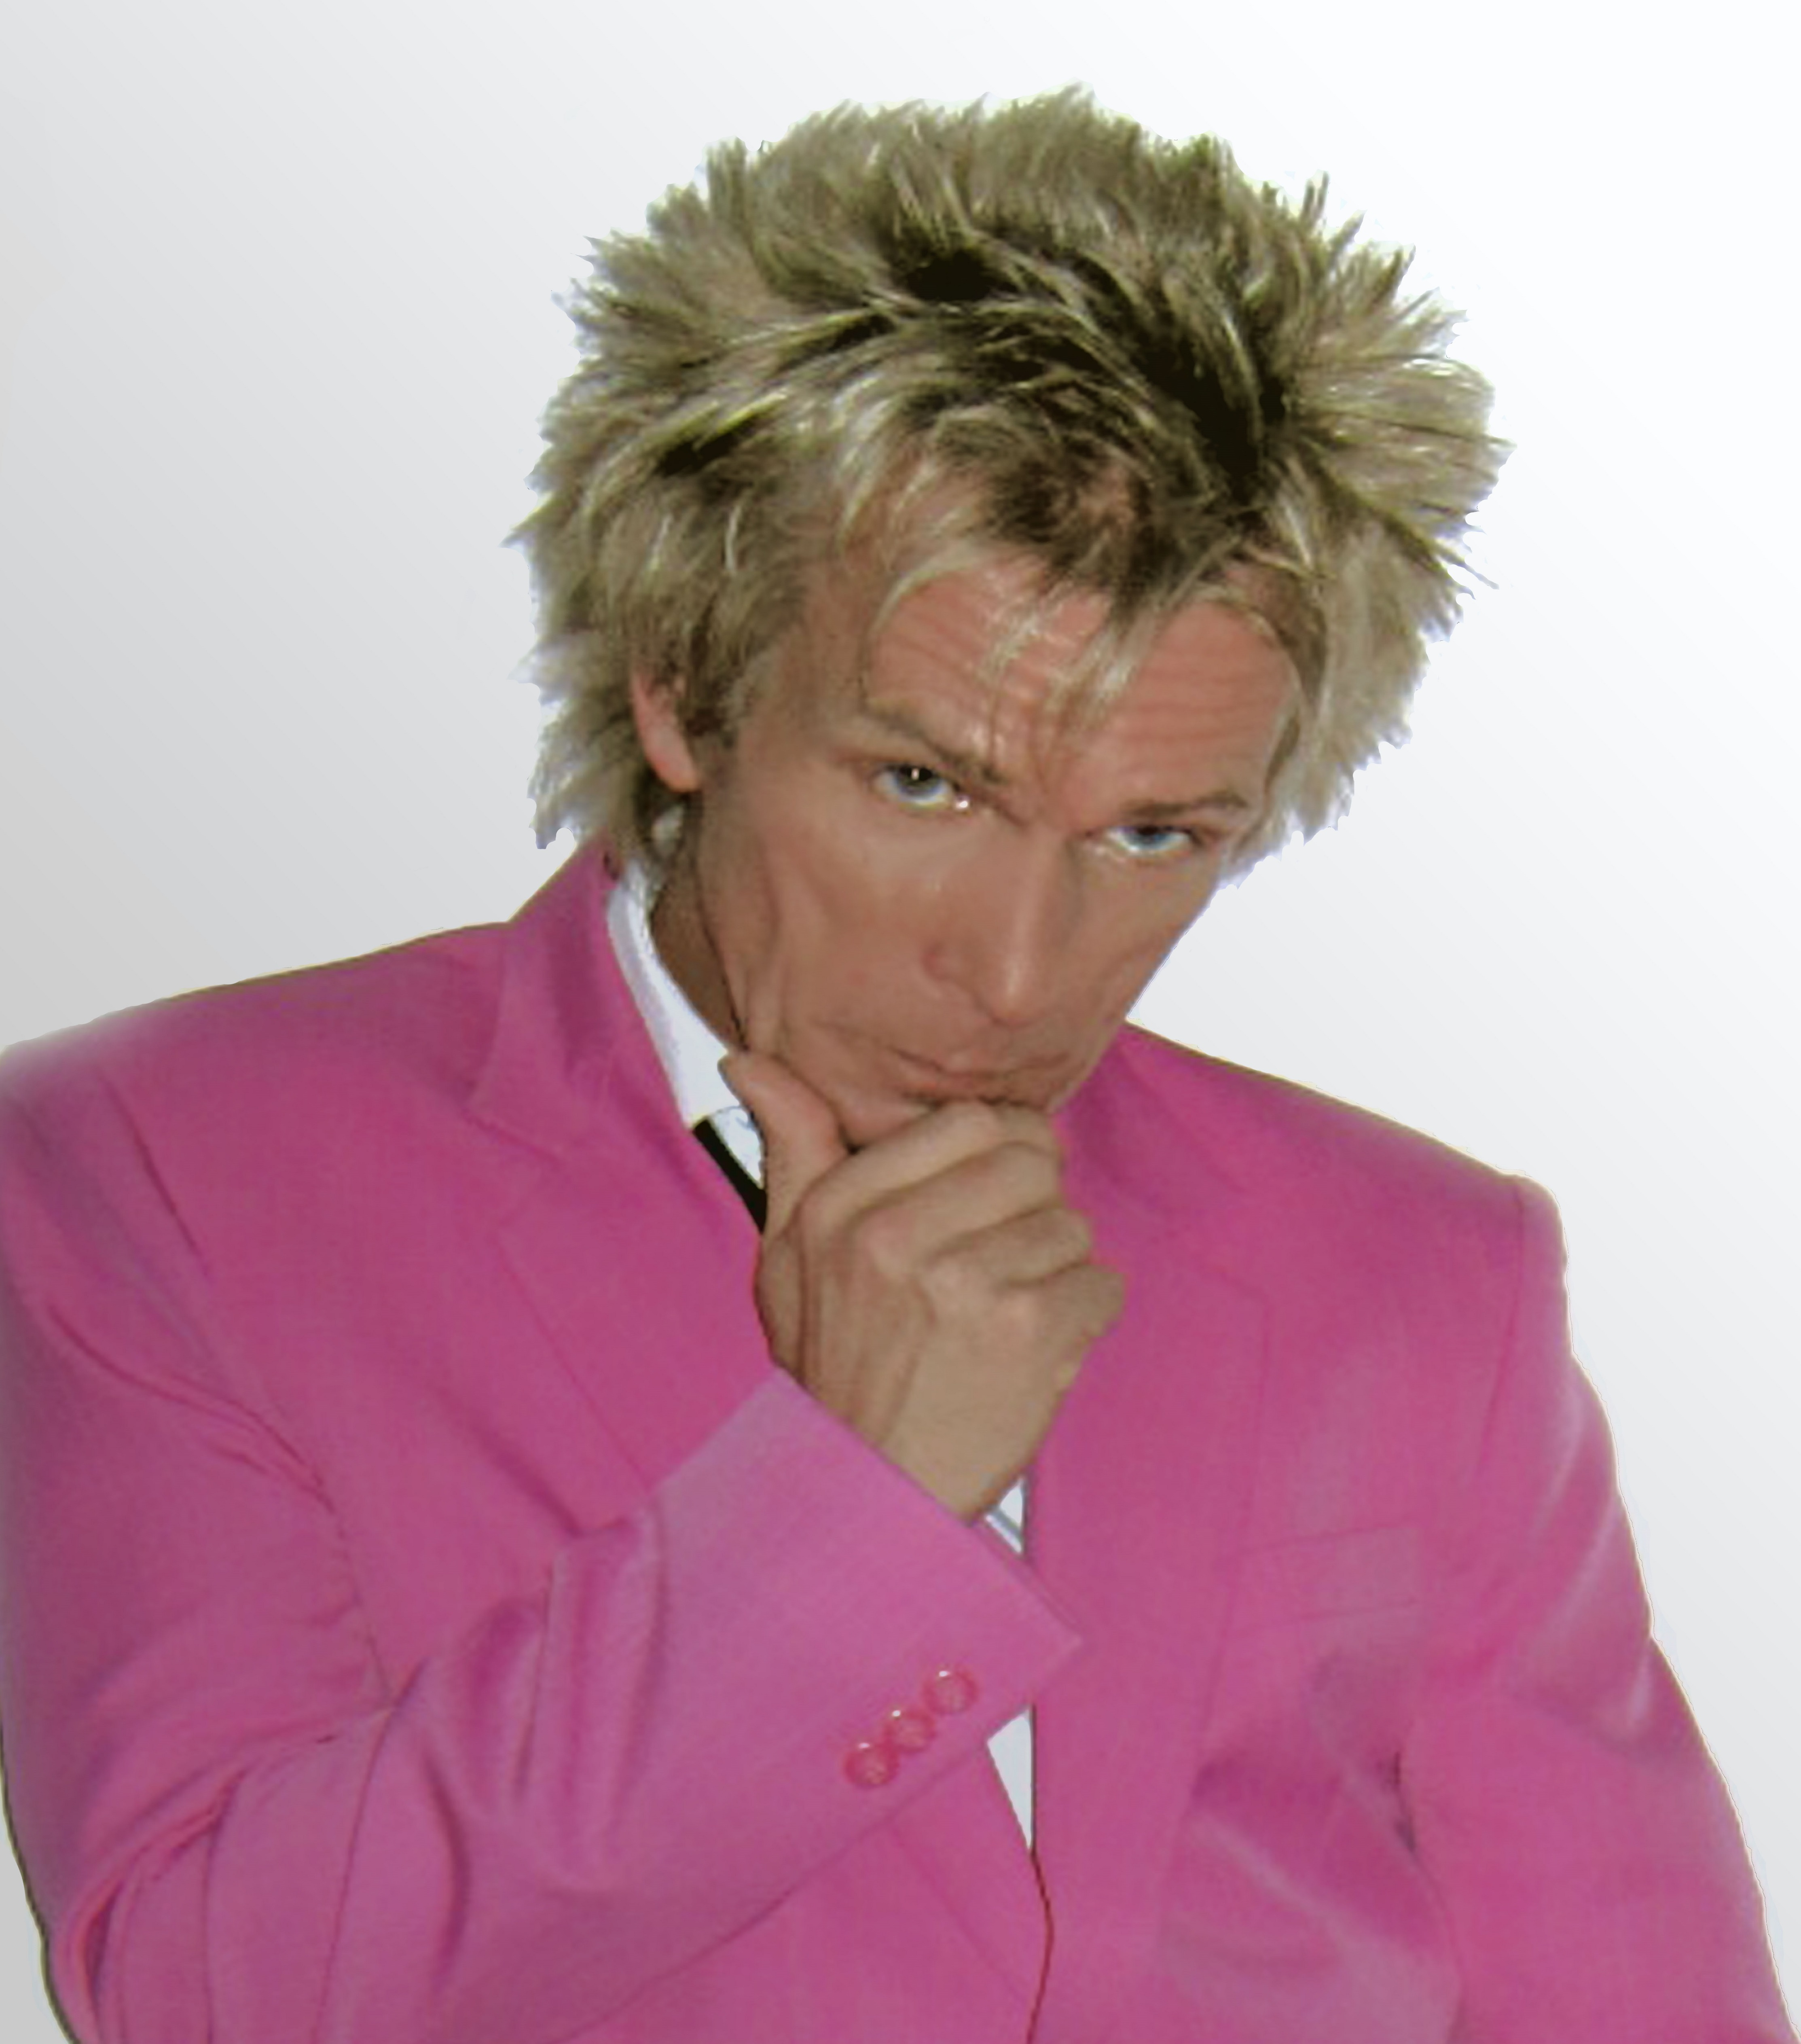 Rod Stewart Tribute Act - Dave Springfield